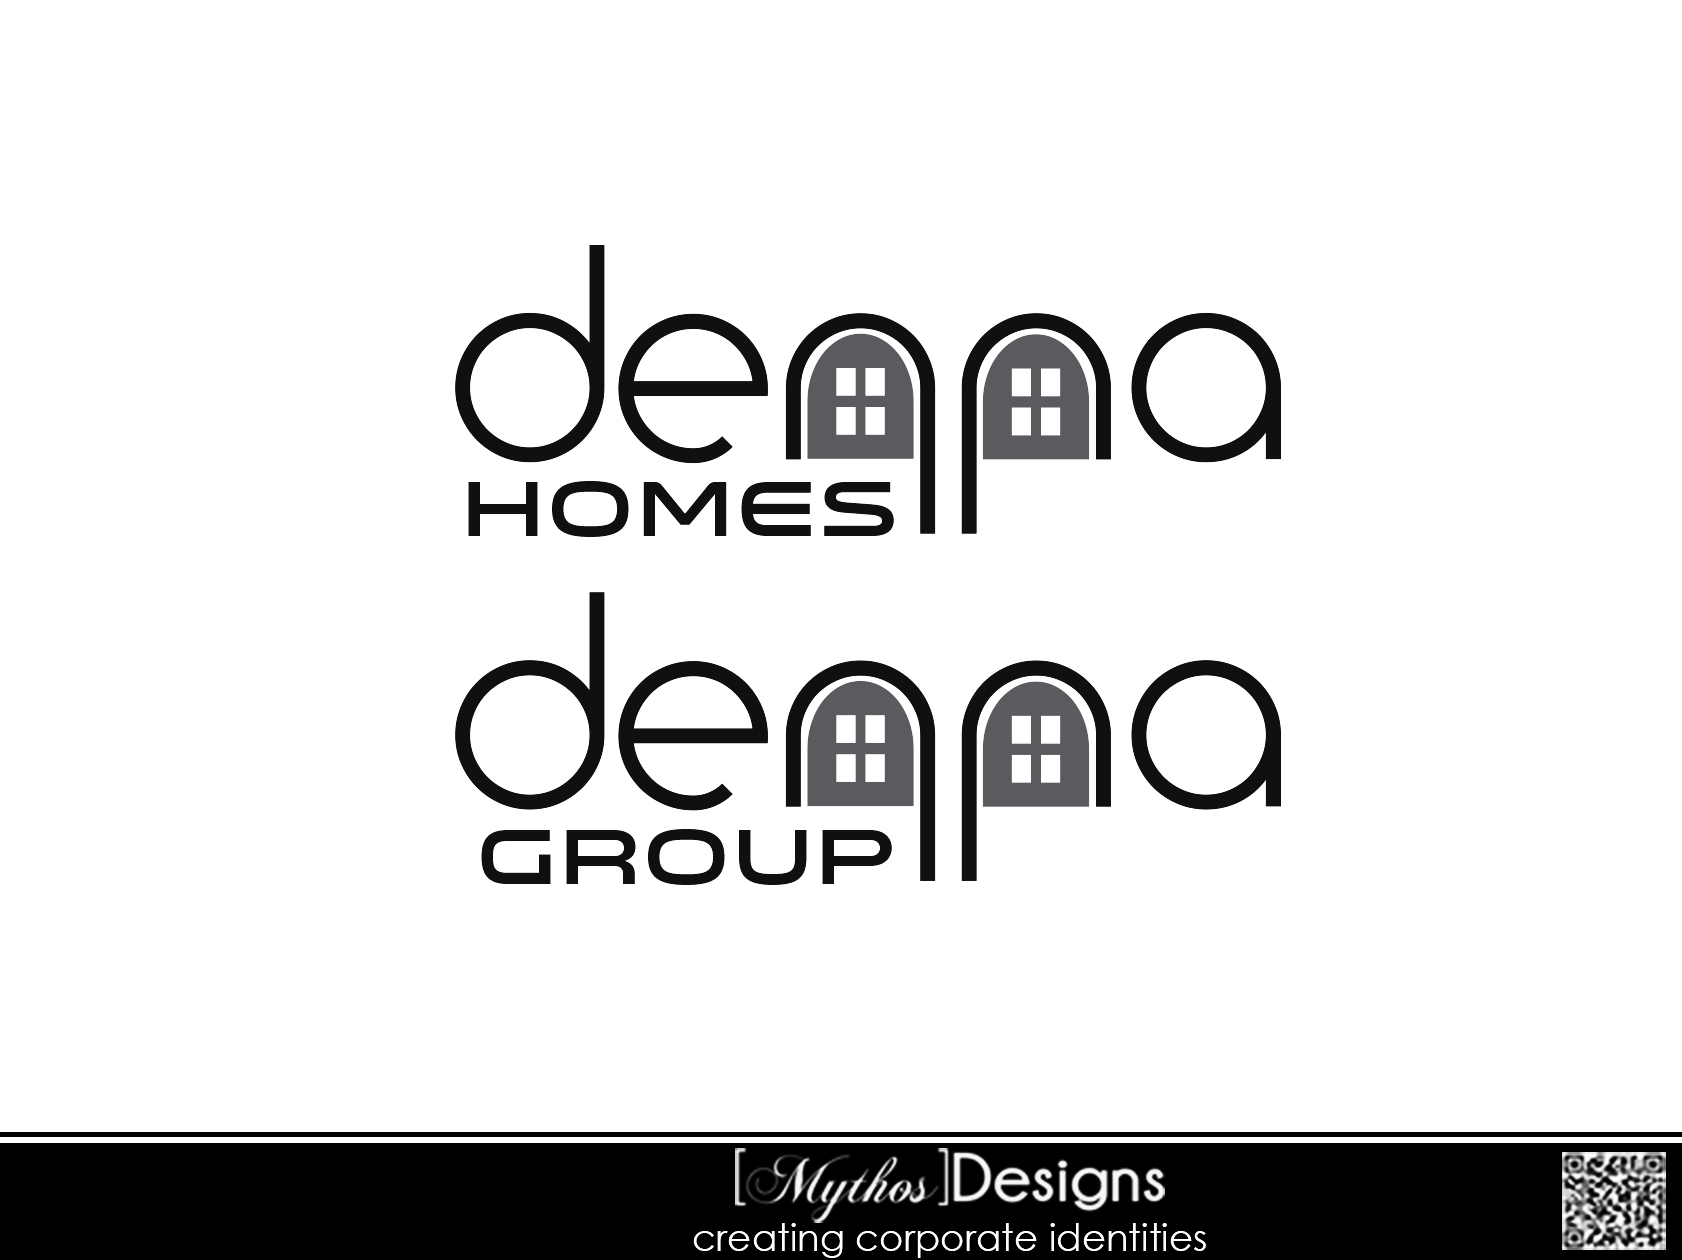 Logo Design by Mythos Designs - Entry No. 372 in the Logo Design Contest Denna Group Logo Design.